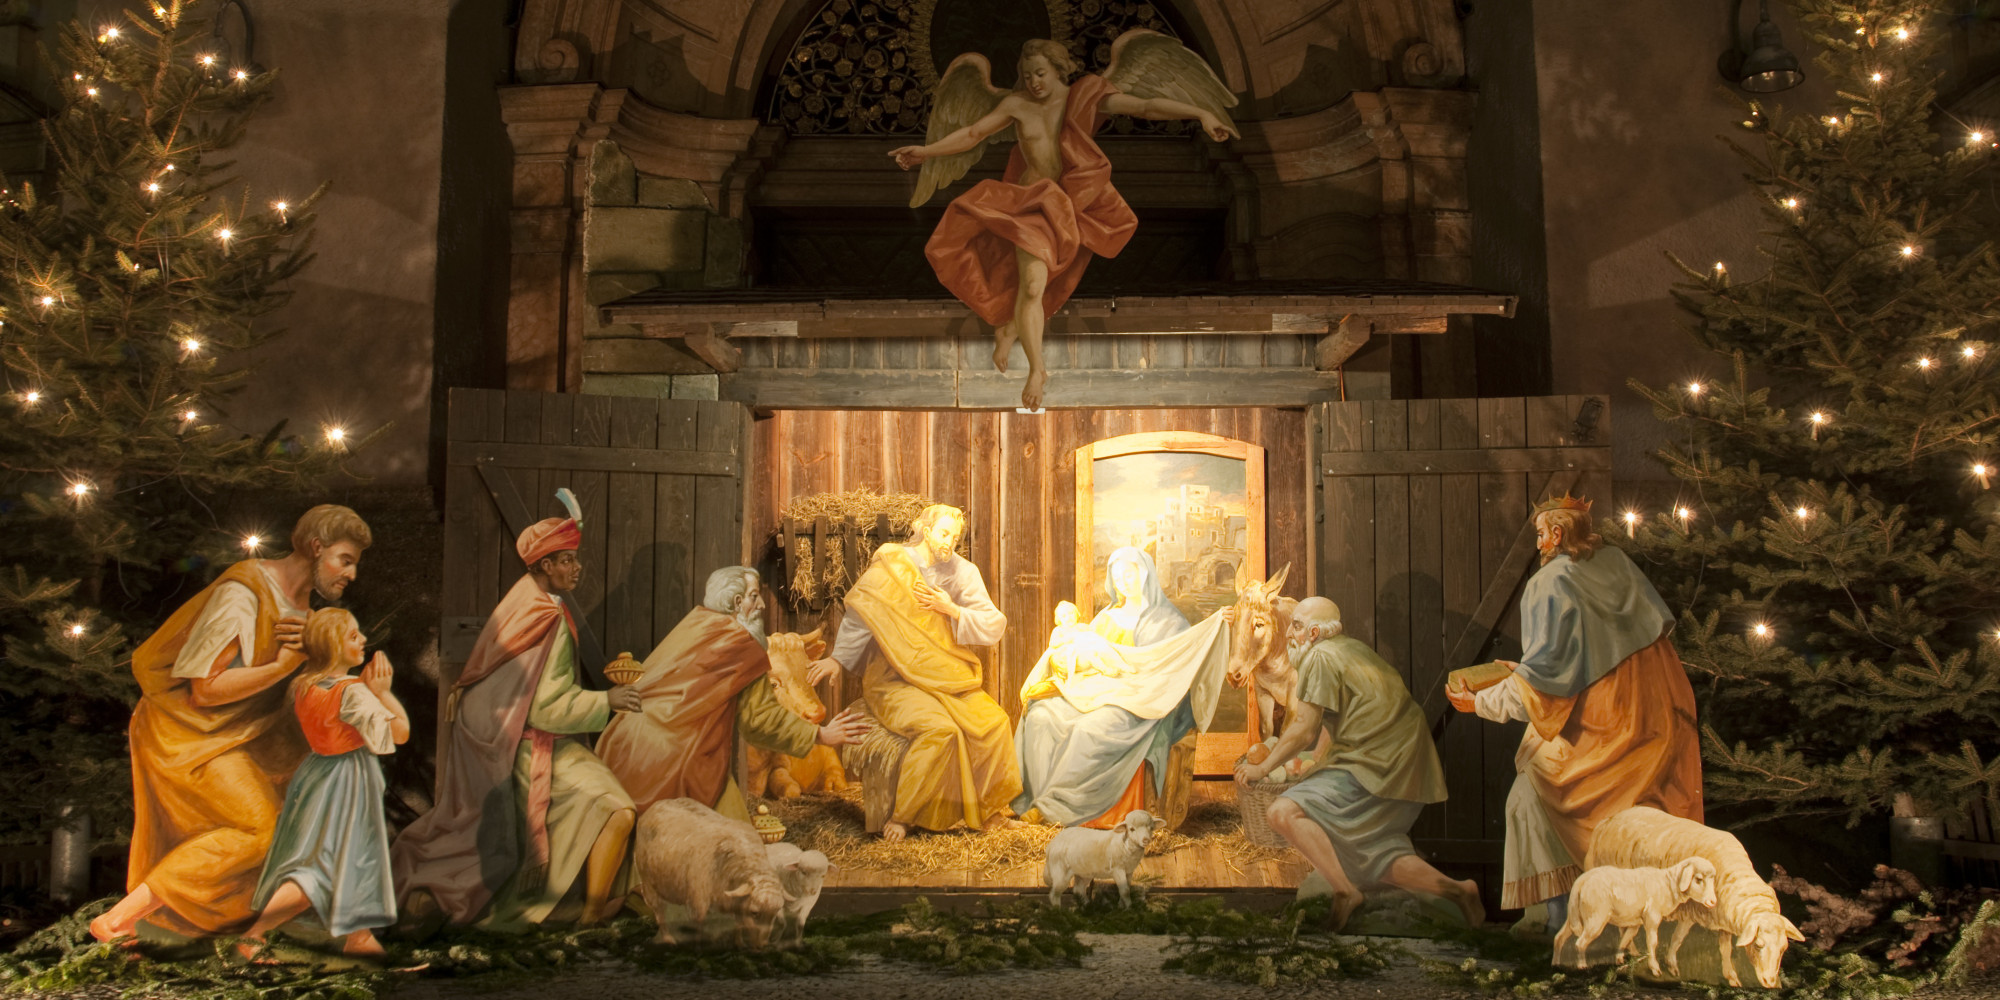 Christmas: What Would Jesus Do? | James D. Tabor